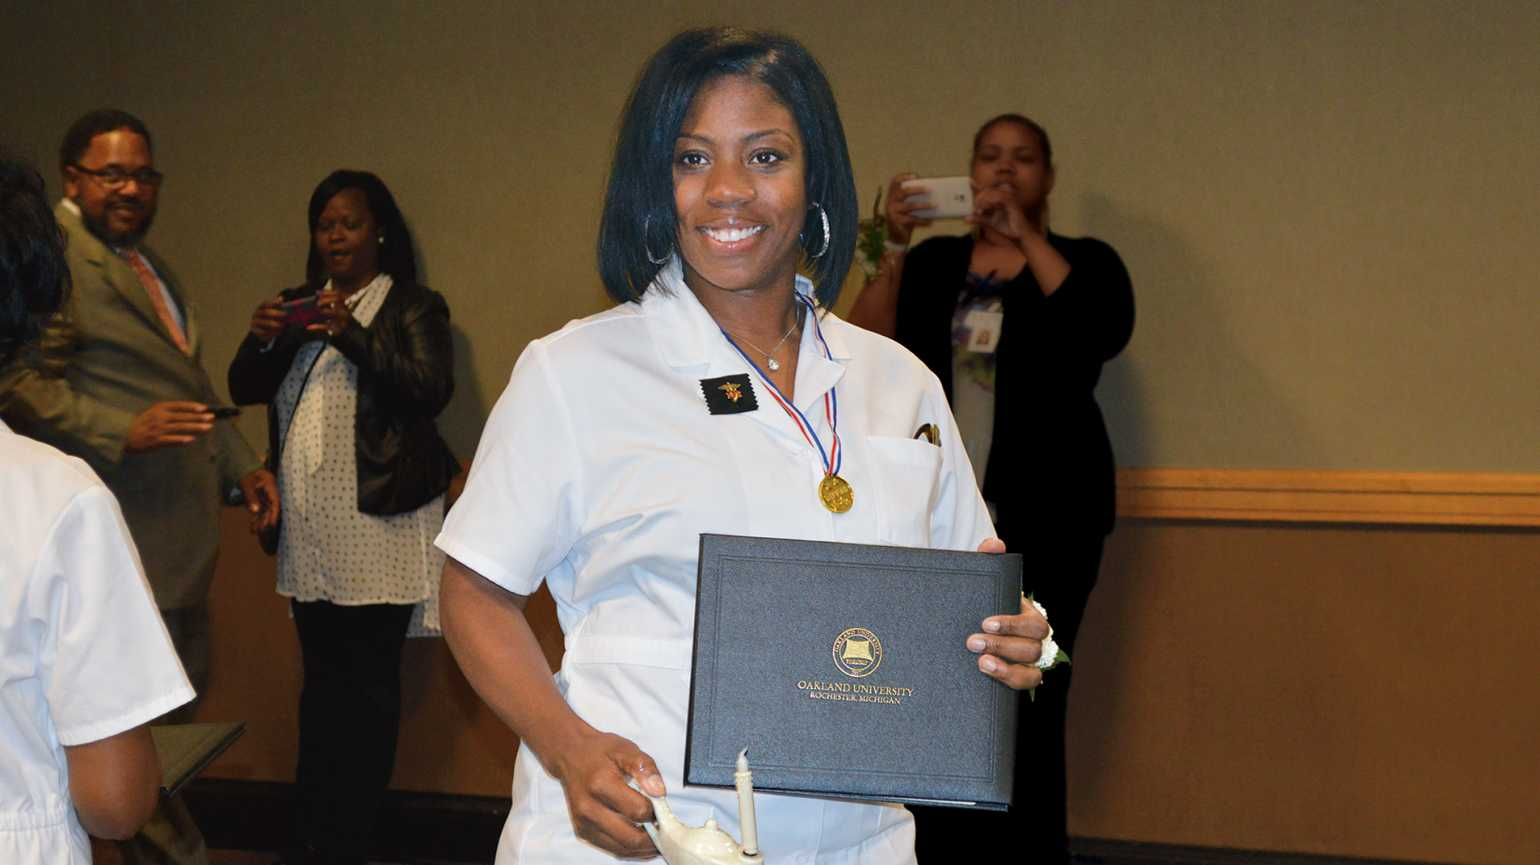 How Could She Make Her Dream to Become a Nurse Come True?